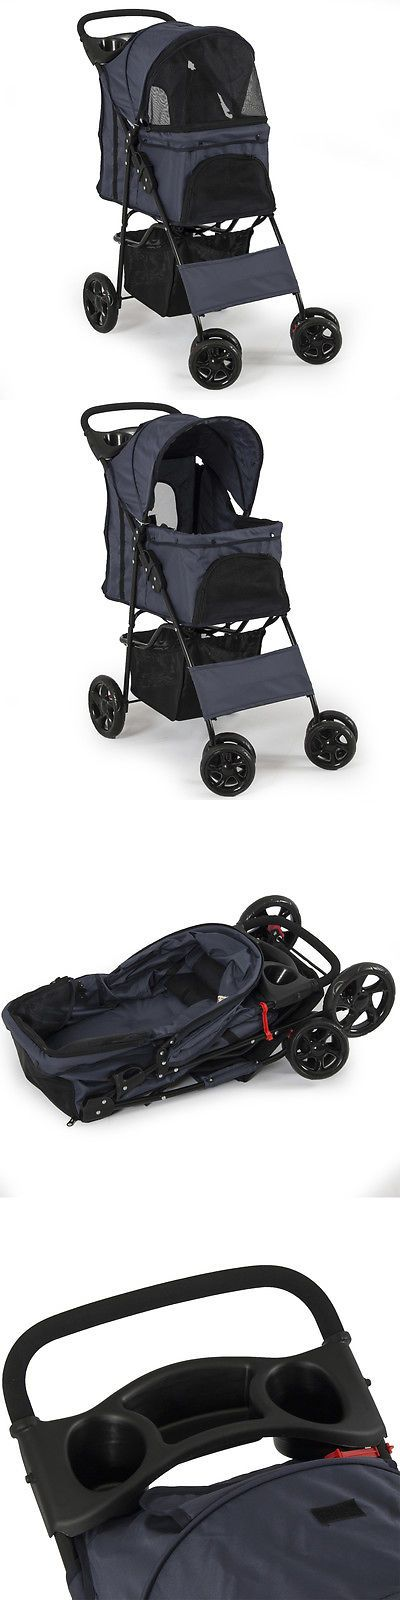 Carriers and Crates 116362: Dark Blue Folding 4 Wheels Pet Dog Cat Stroller With Cover Carrier Cart Outdoor BUY IT NOW ONLY: $39.99